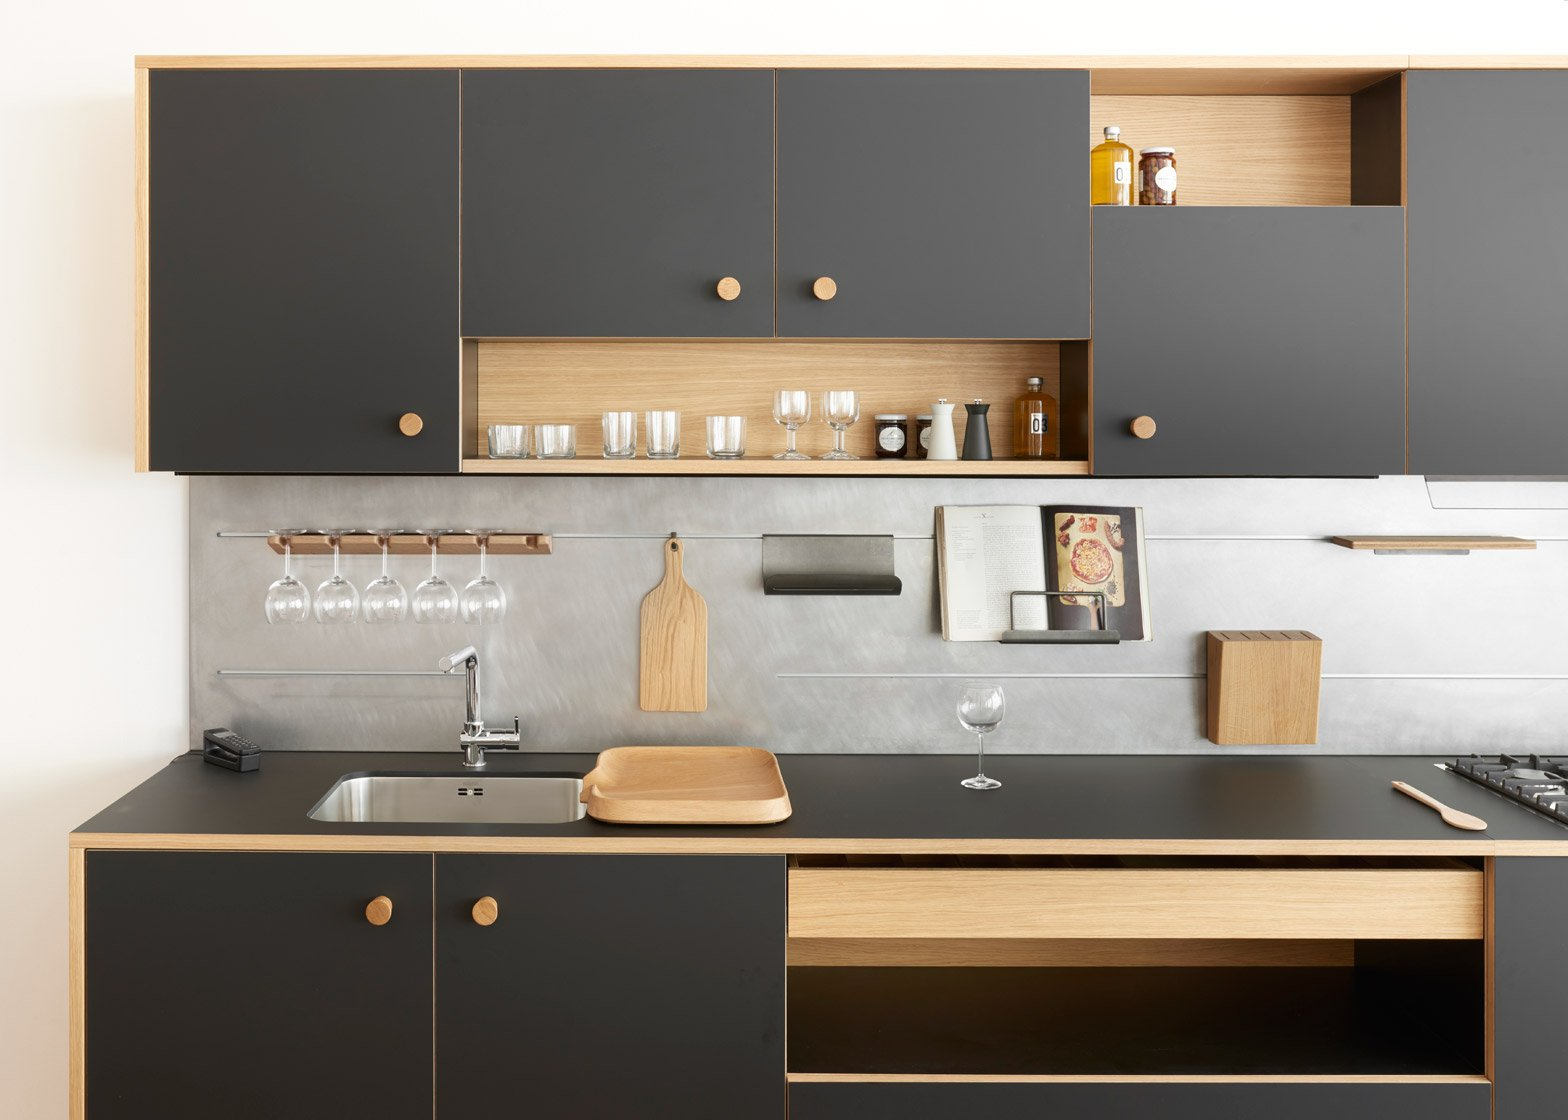 Jasper Morrison reveals first kitchen design for Schiffini